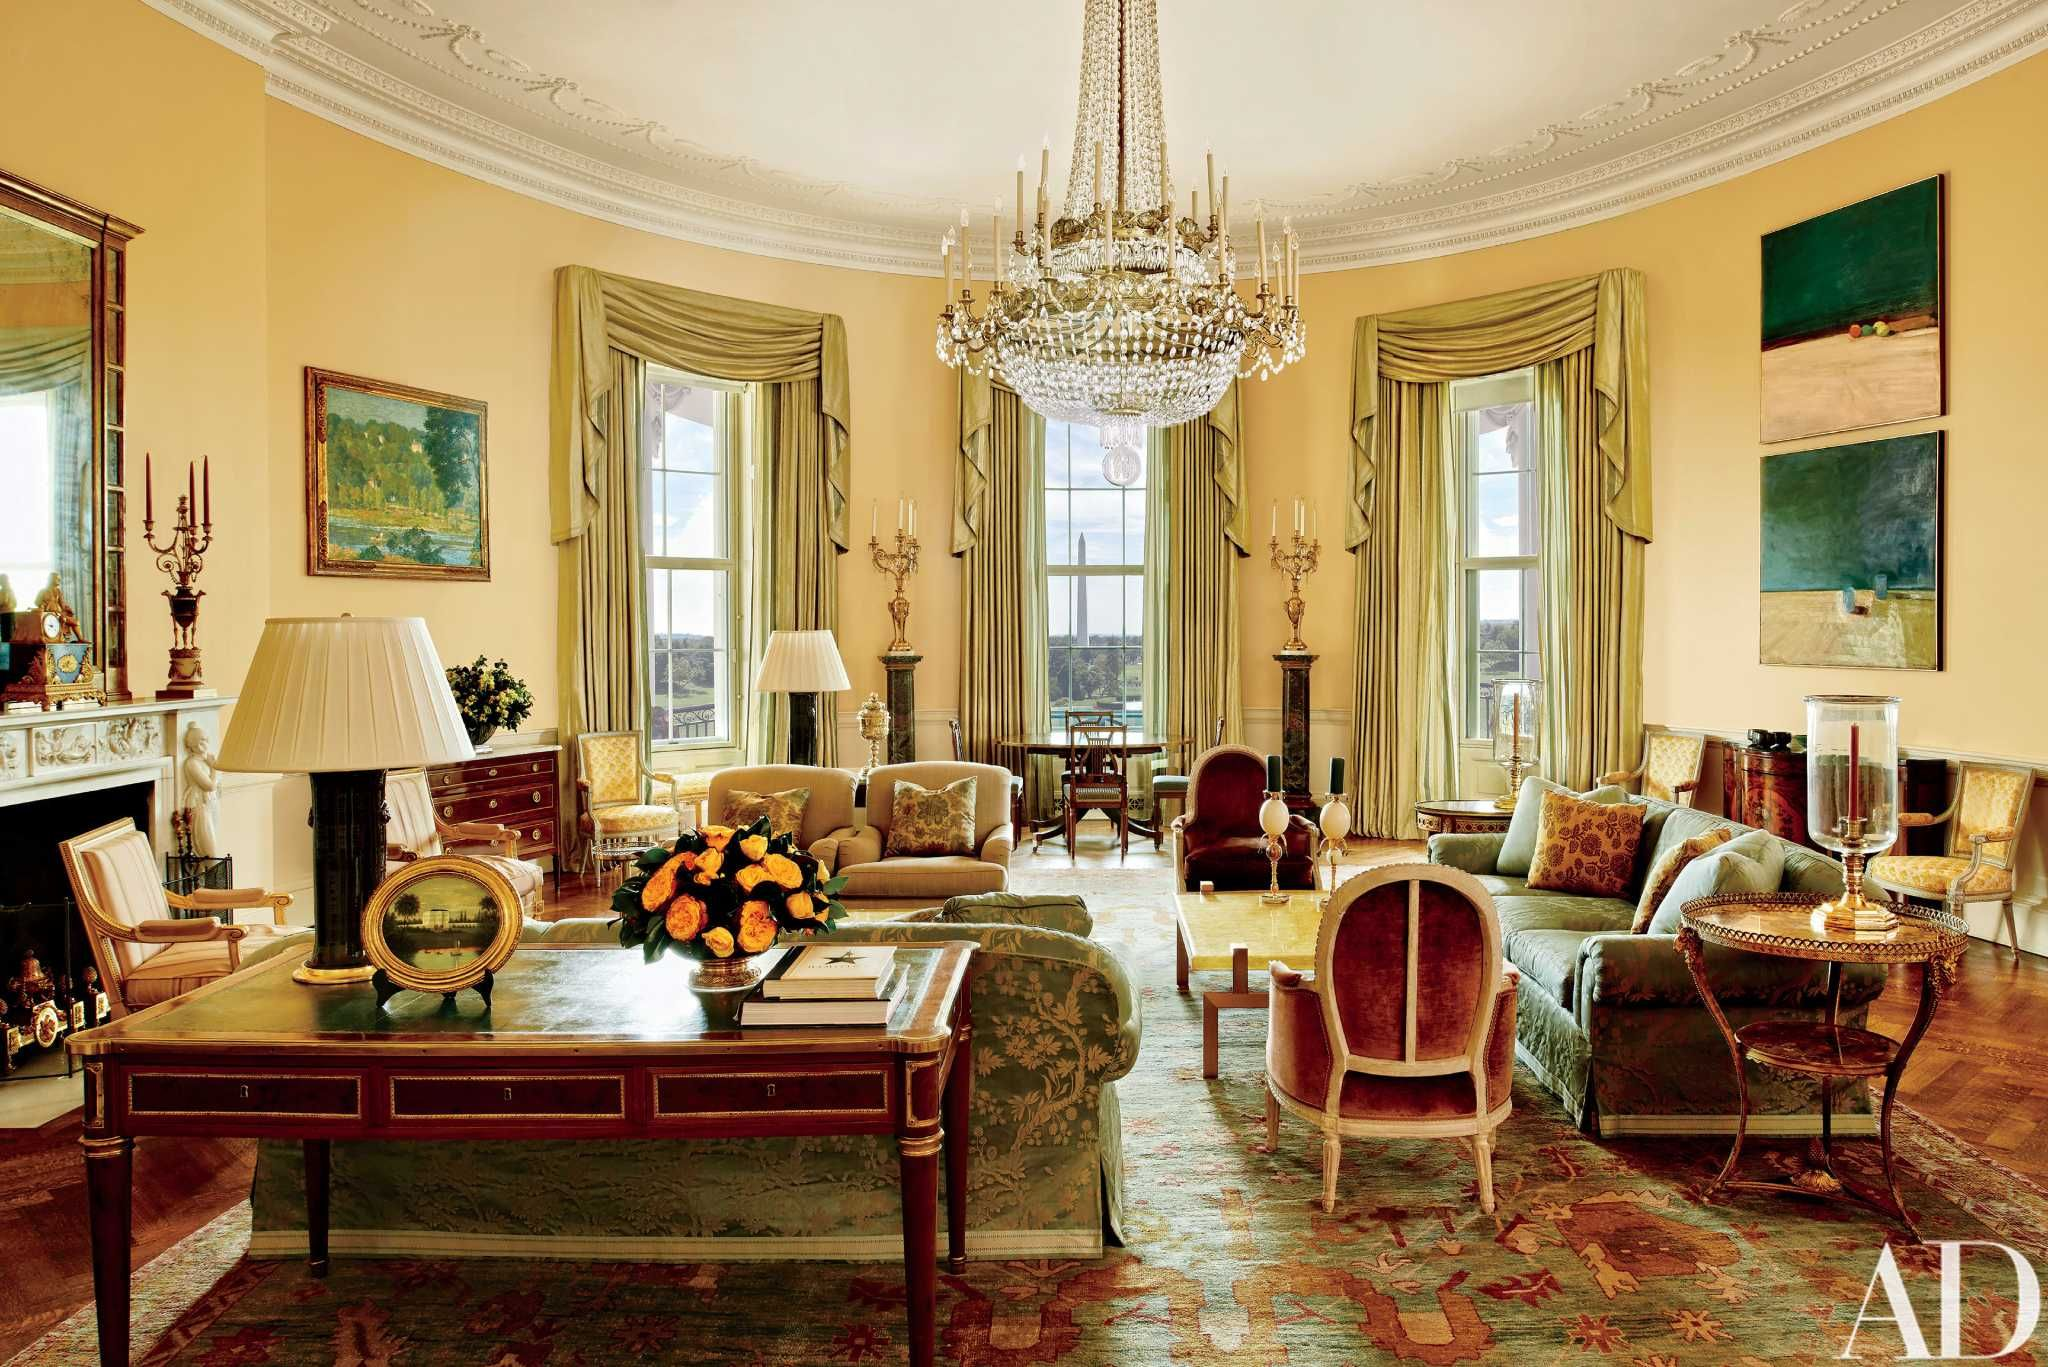 Another view of the Yellow Oval Room highlighting the beautiful desk upon which the Camp David peace accords of 1978 were signed. While the decor is formal the greens, rust and yellows picked up from the exquisite Oushak rug make this a very gracious and inviting sitting room